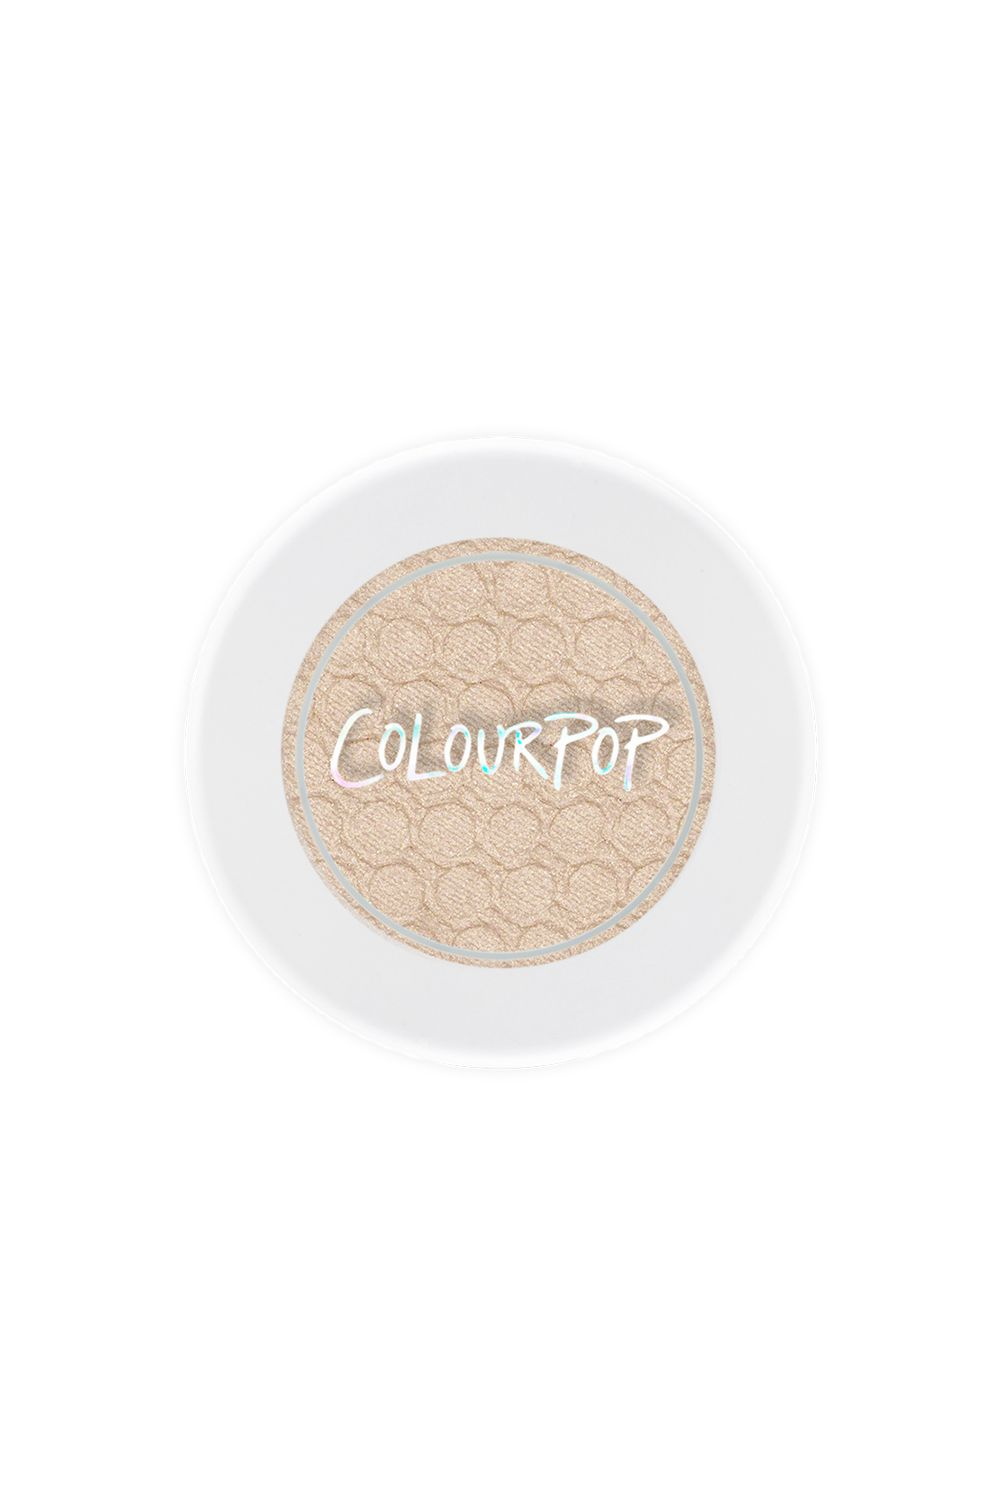 "<p>""ColourPop's Super Shock Shadows (especially the satin finish) last forever on my eyes. I'm obsessed and own way too many of them."" —@<a href=""https://urldefense.proofpoint.com/v2/url?u=https-3A__www.reddit.com_r_MakeupAddiction_comments_6na16m_what-5Fare-5Fyour-5Flongest-5Flasting-5Fproducts_dk8brwh_&d=DwMFaQ&c=B73tqXN8Ec0ocRmZHMCntw&r=Y9qZBk4gtWQj4PTfGTB8TebJ-sgt_n2PCHuejA7GLRo&m=NFQ0s7UzngZa8NyJLiHXDFok2_u9eFDja50q4IuACu0&s=Mr-BijcZODRTKXhp6kH7-boreoUcWlAn5iN-qOeAi9U&e="">lilypotz</a></p><p><i data-redactor-tag=""i"">ColourPop Super Shock Shadow in Glow, $5</i></p><p><strong data-redactor-tag=""strong"">BUY IT</strong>: <strong data-redactor-tag=""strong""><a href=""https://colourpop.com/products/glow"" data-tracking-id=""recirc-text-link"">colourpop.com</a>.</strong></p>"